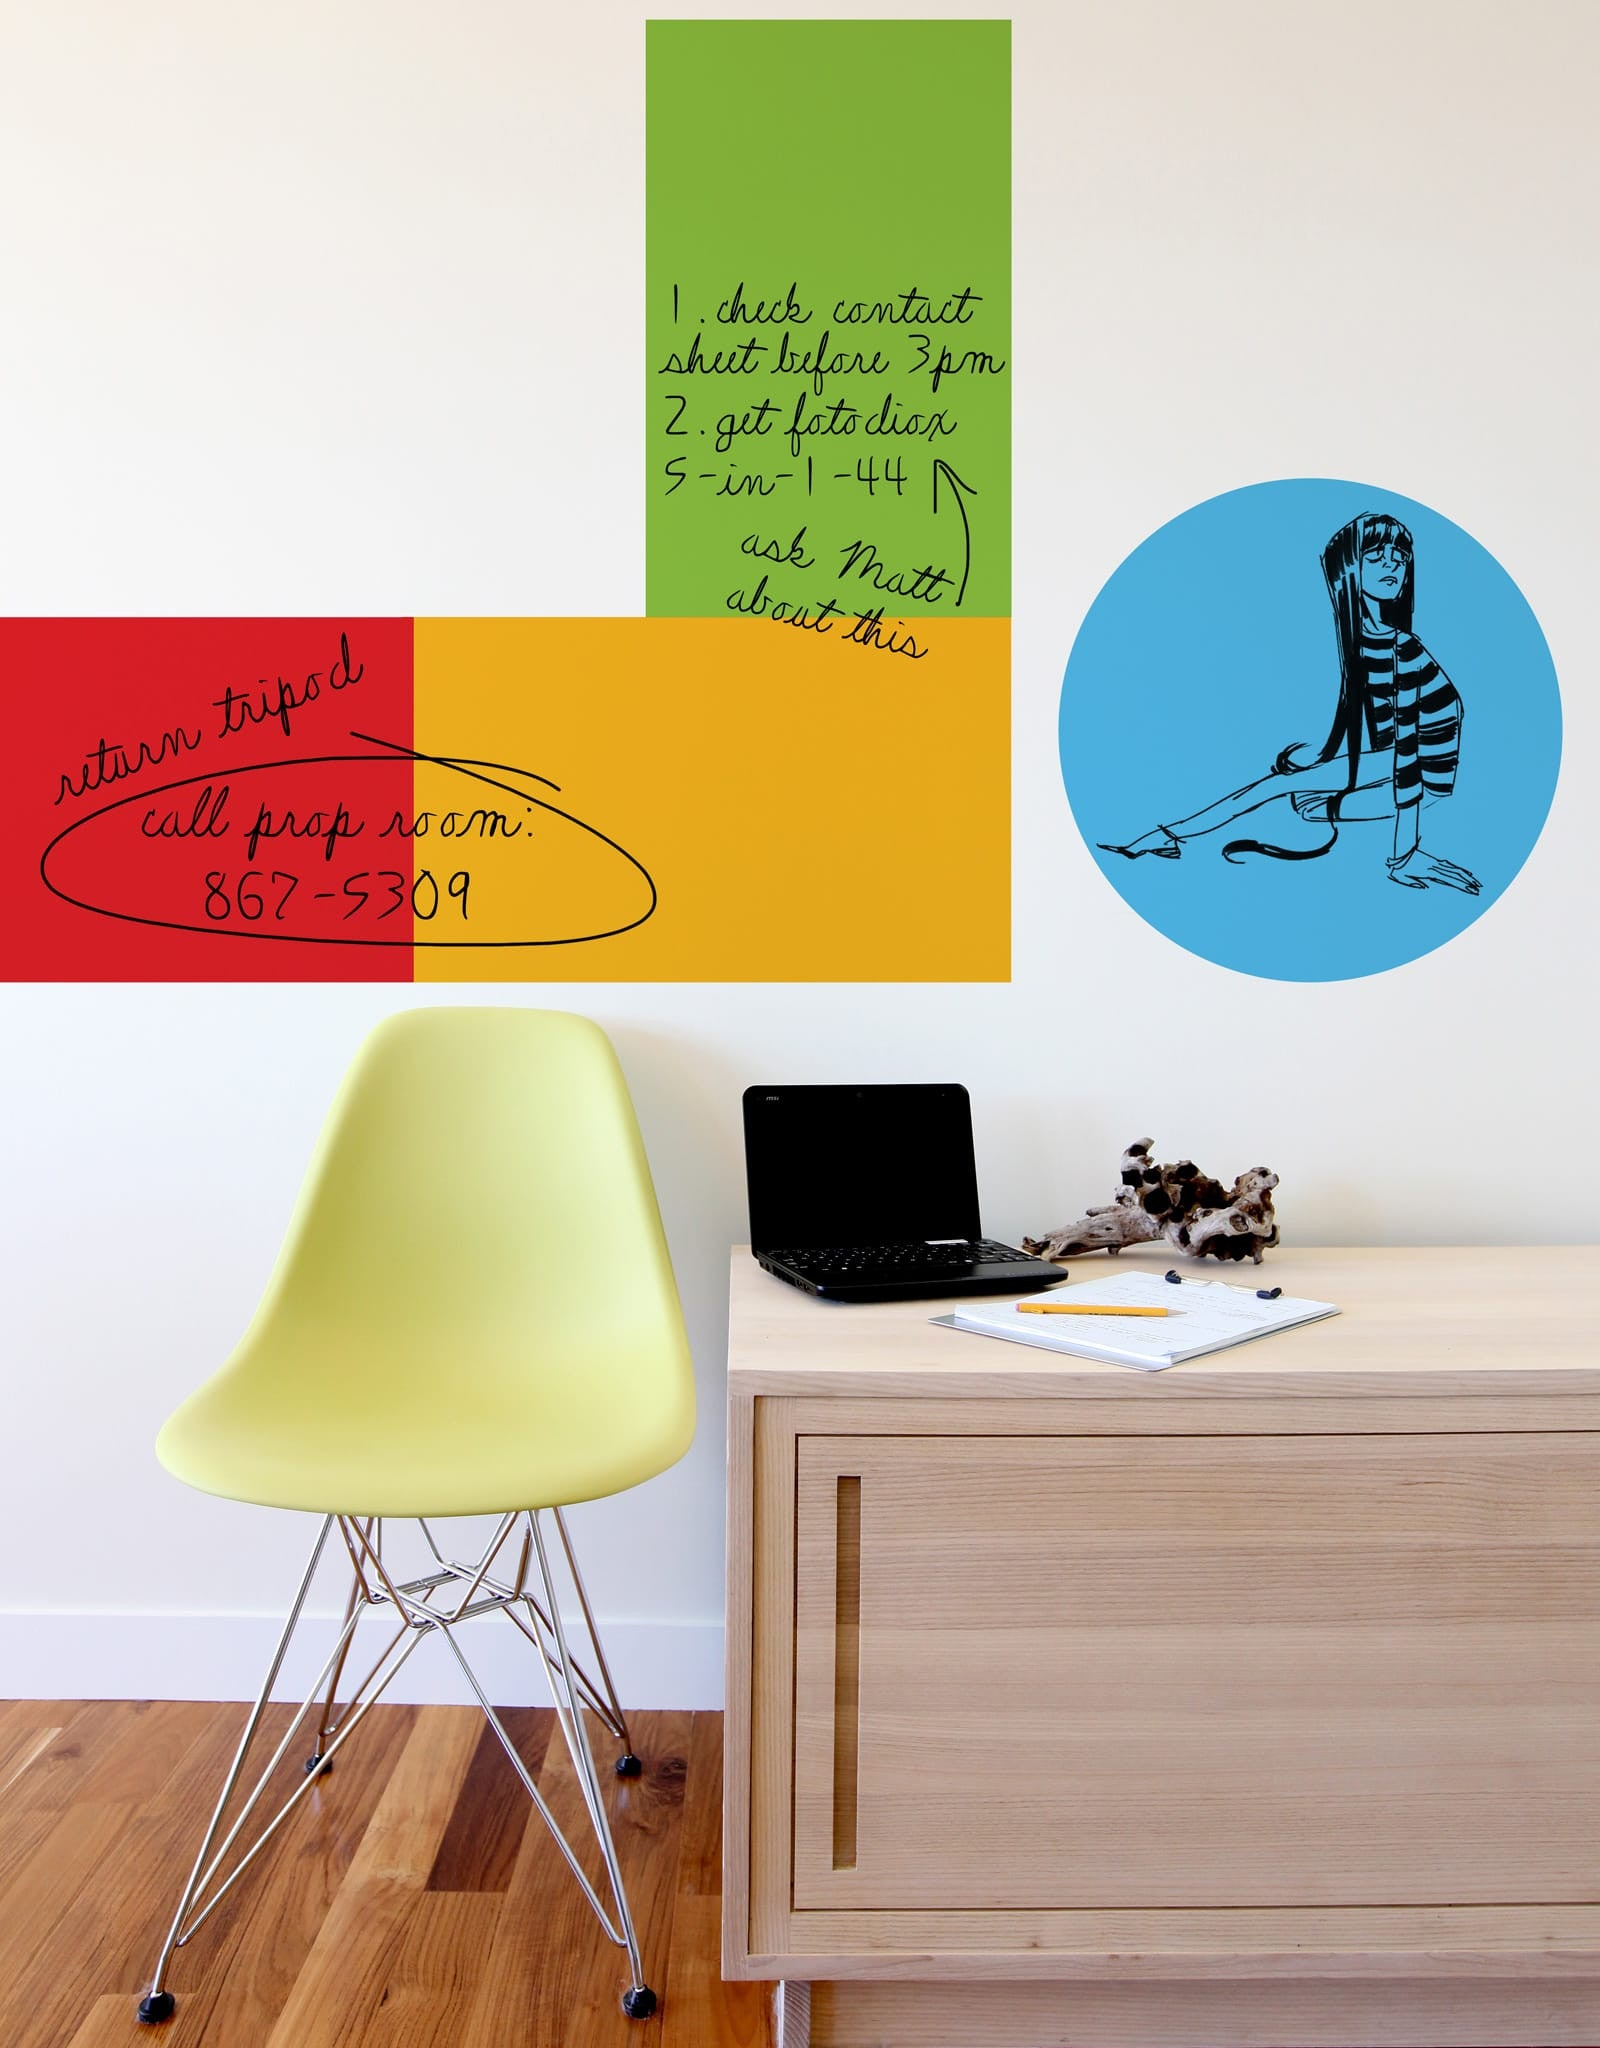 Whiteboard Wall Stickers Grasshopr Whiteboard Wall Sticker Removable ...